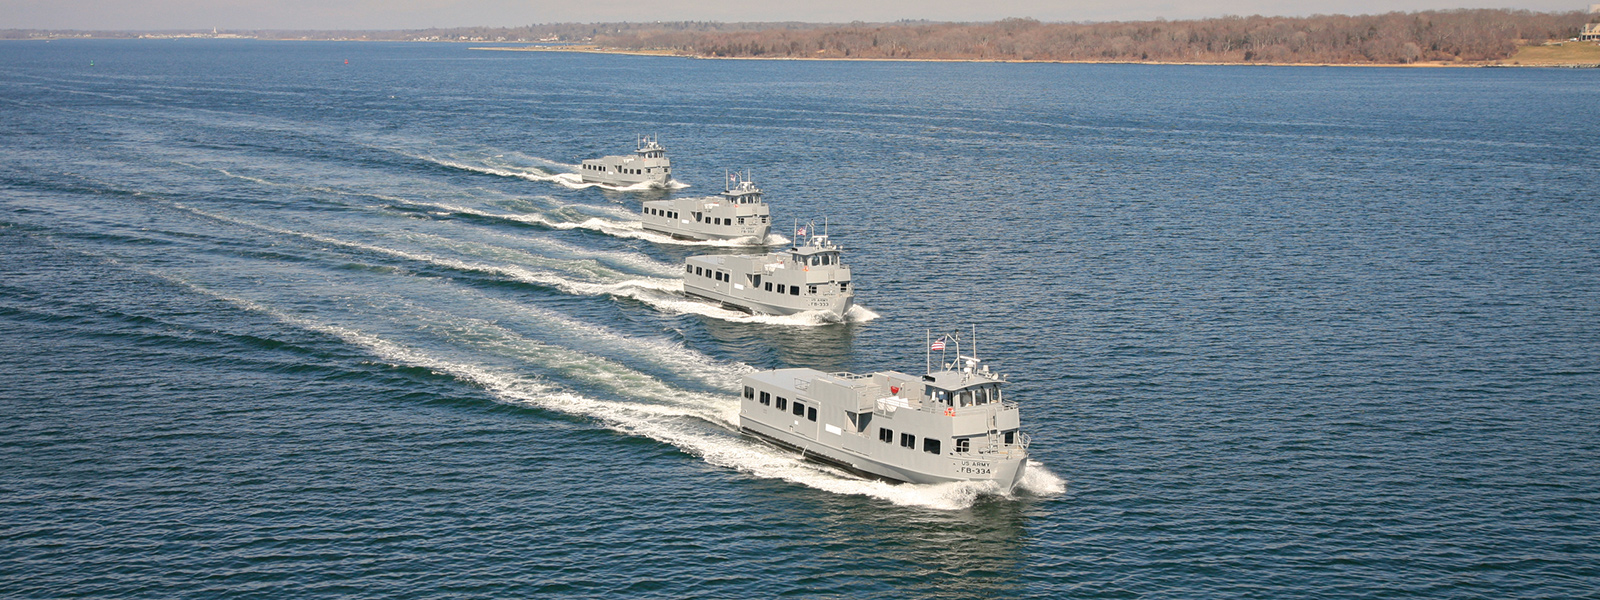 Army Vessels